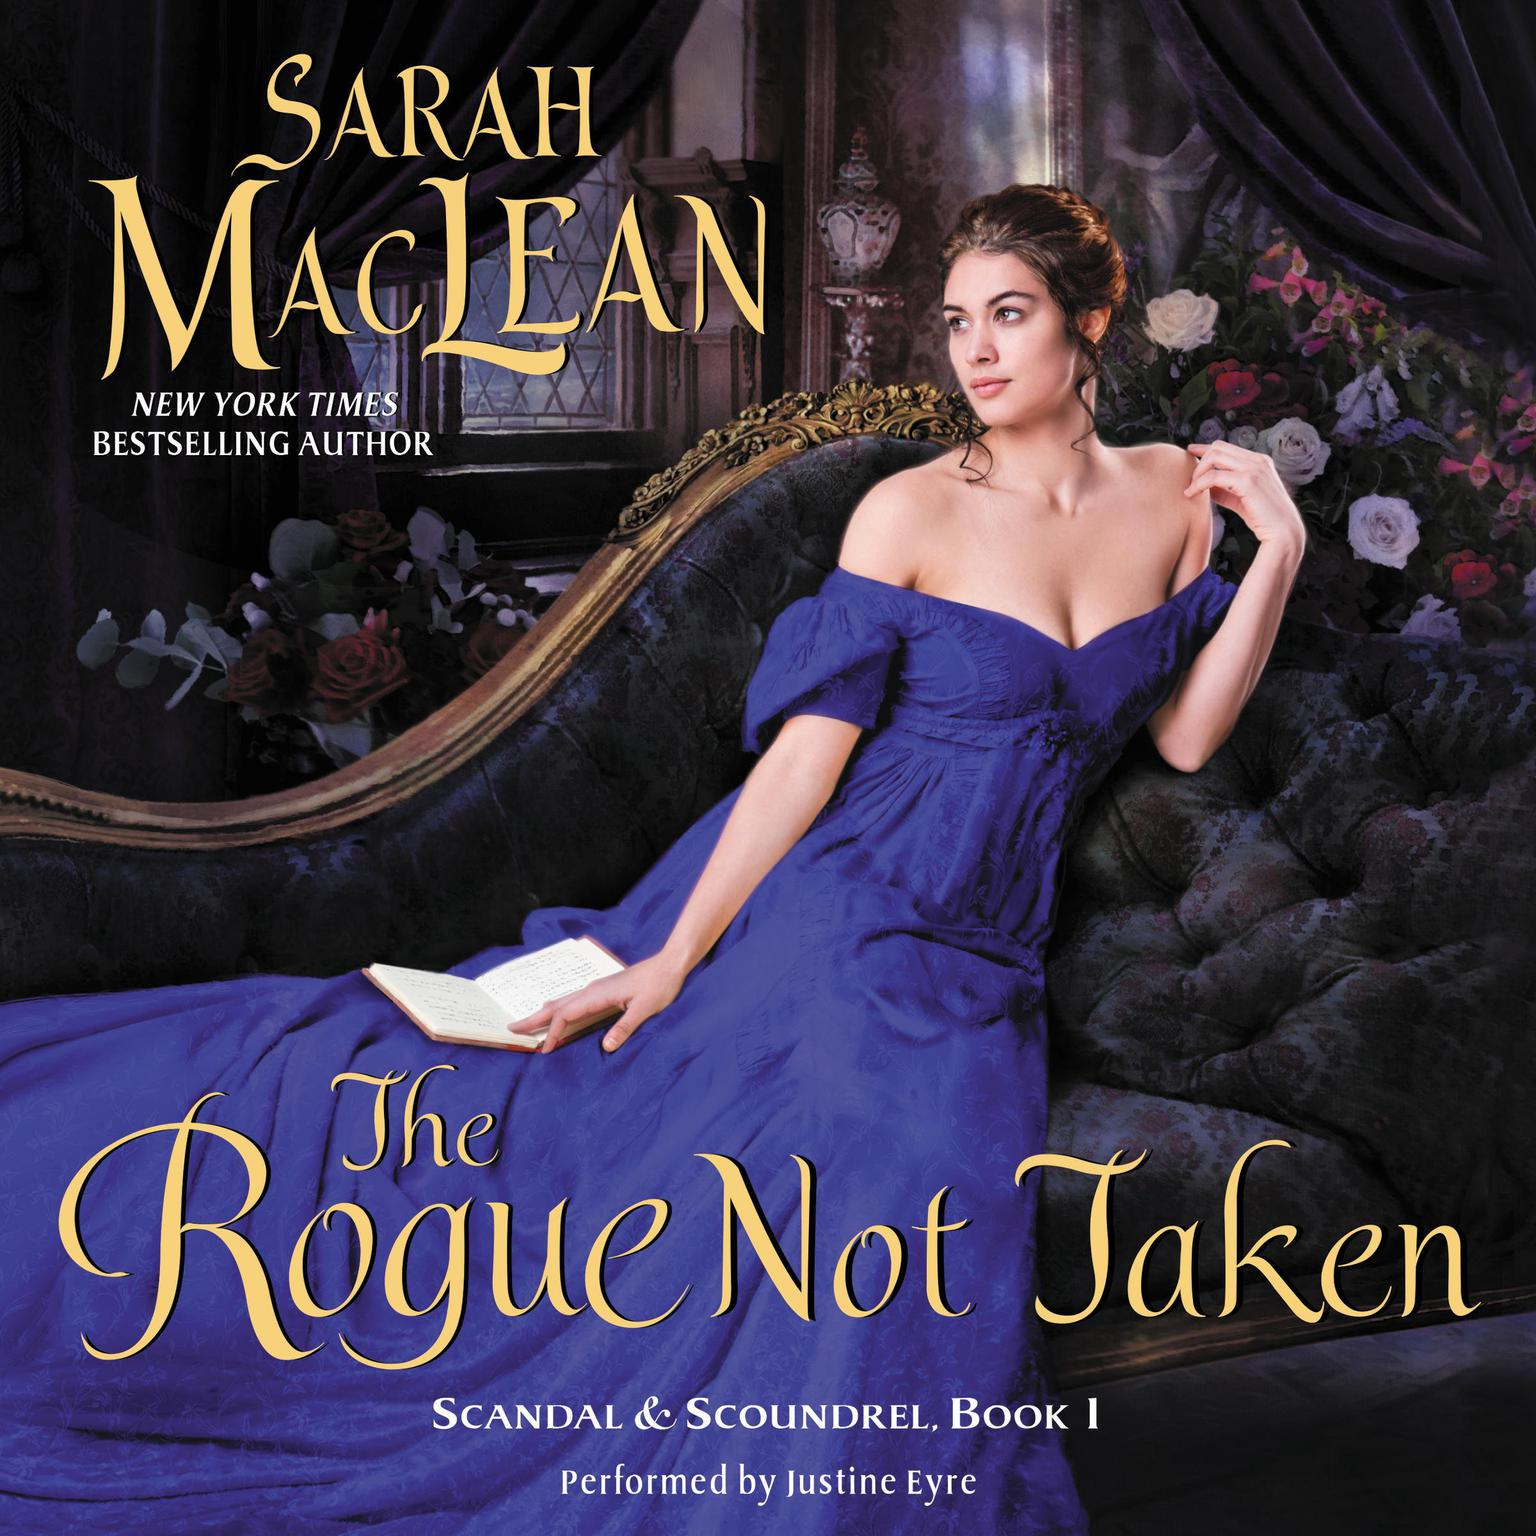 Printable The Rogue Not Taken: Scandal & Scoundrel, Book I Audiobook Cover Art